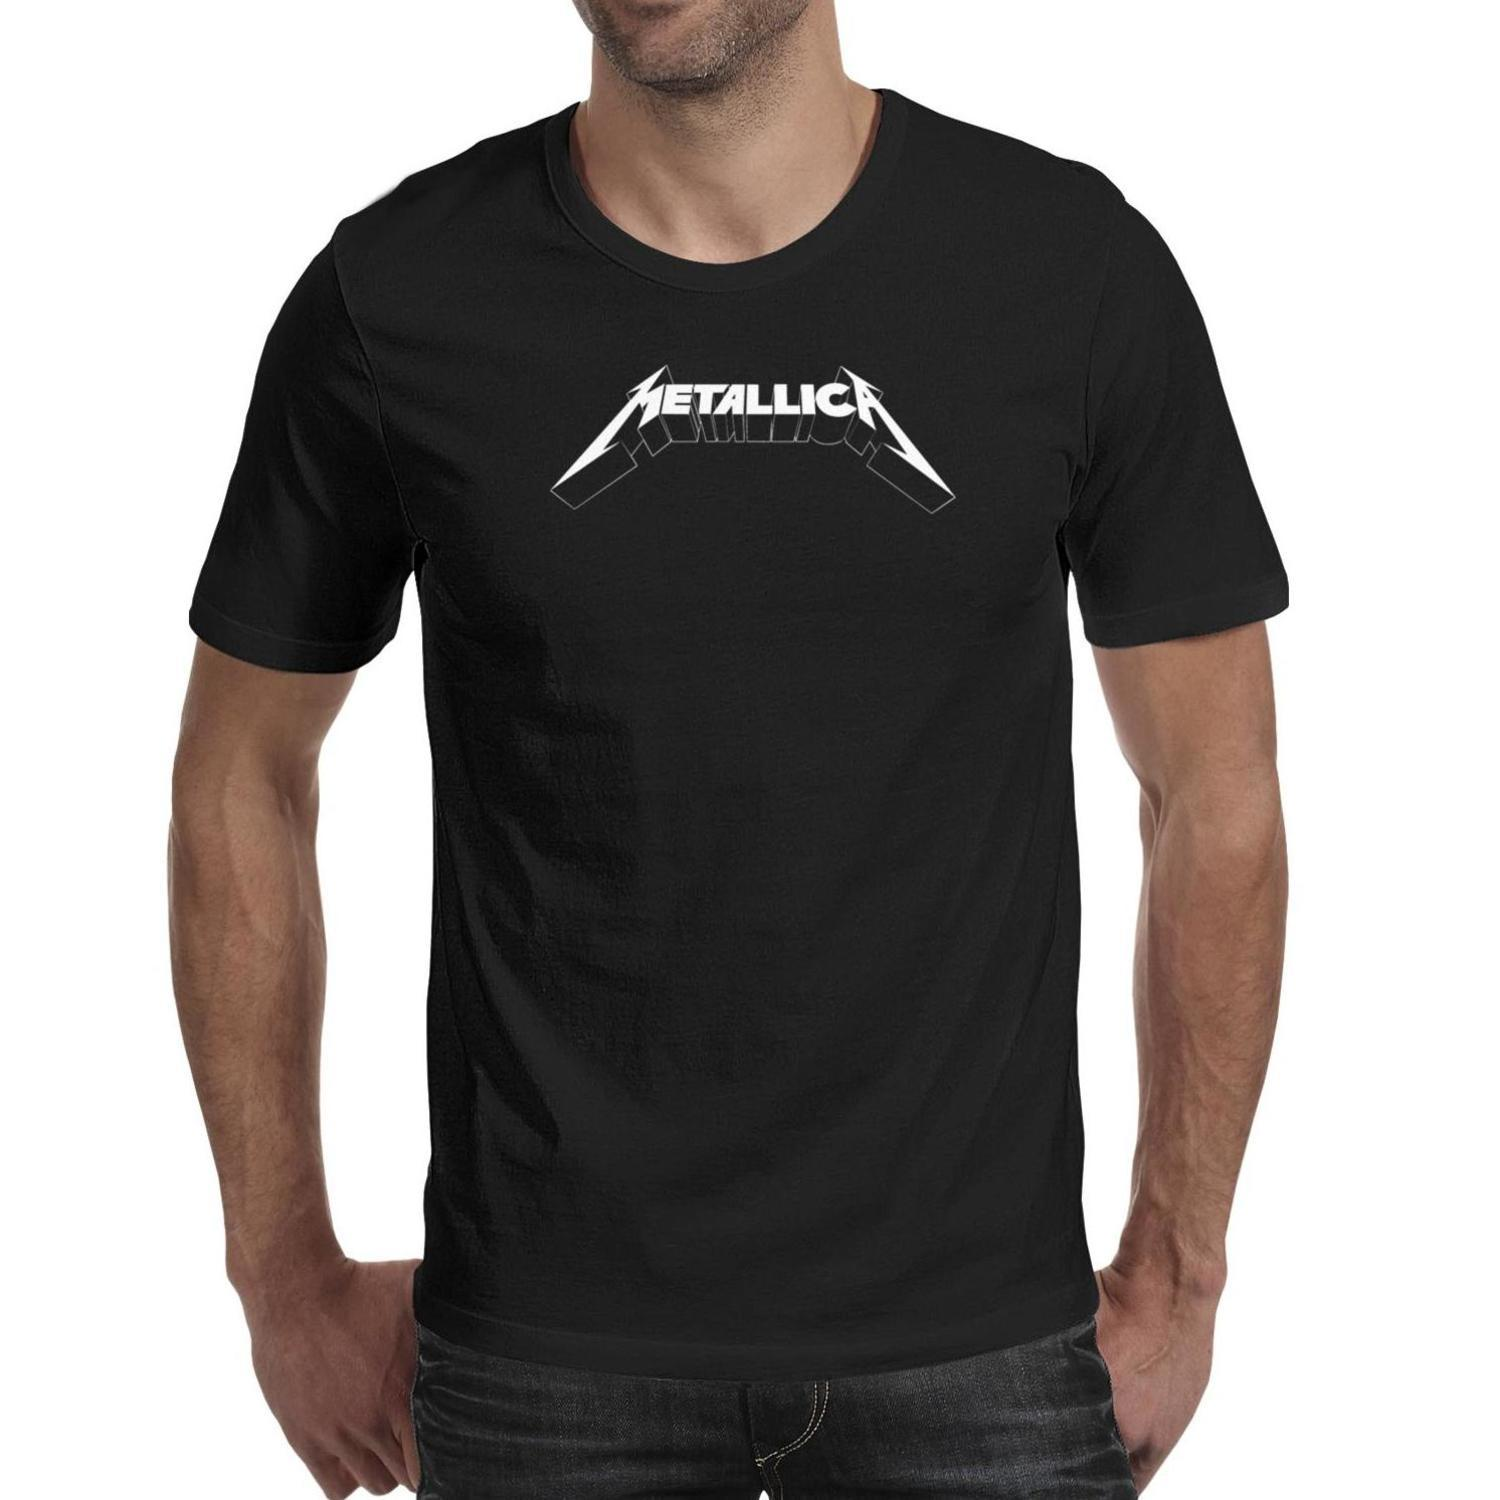 Mens t-shirt American rock band Metallica music shirt Cotton Casual Fashion Shirt